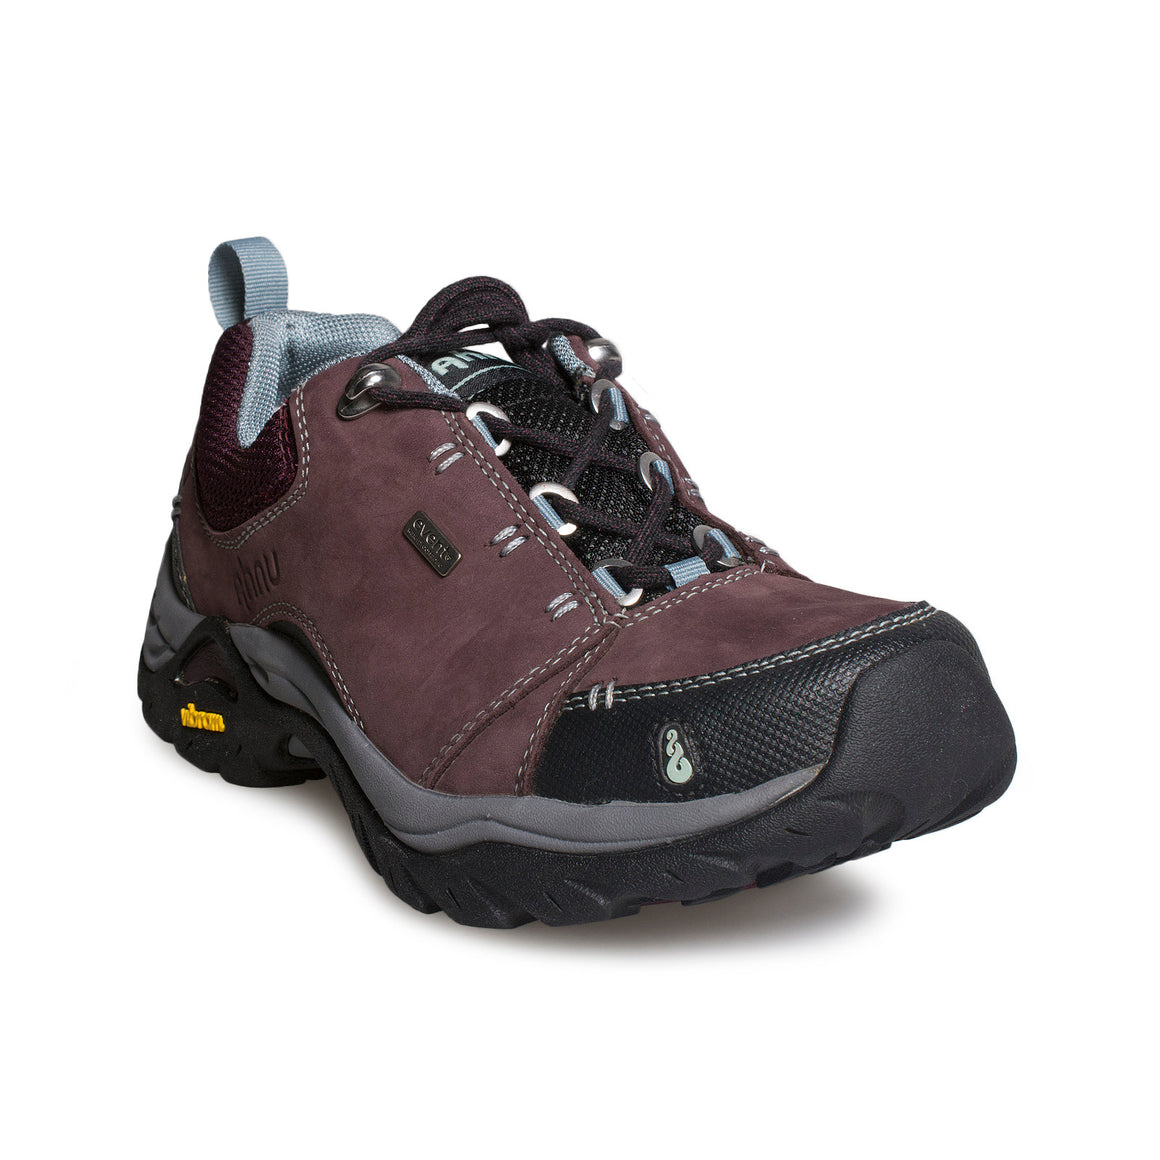 AHNU Montara II Winetasting Hiking Shoes - Women's